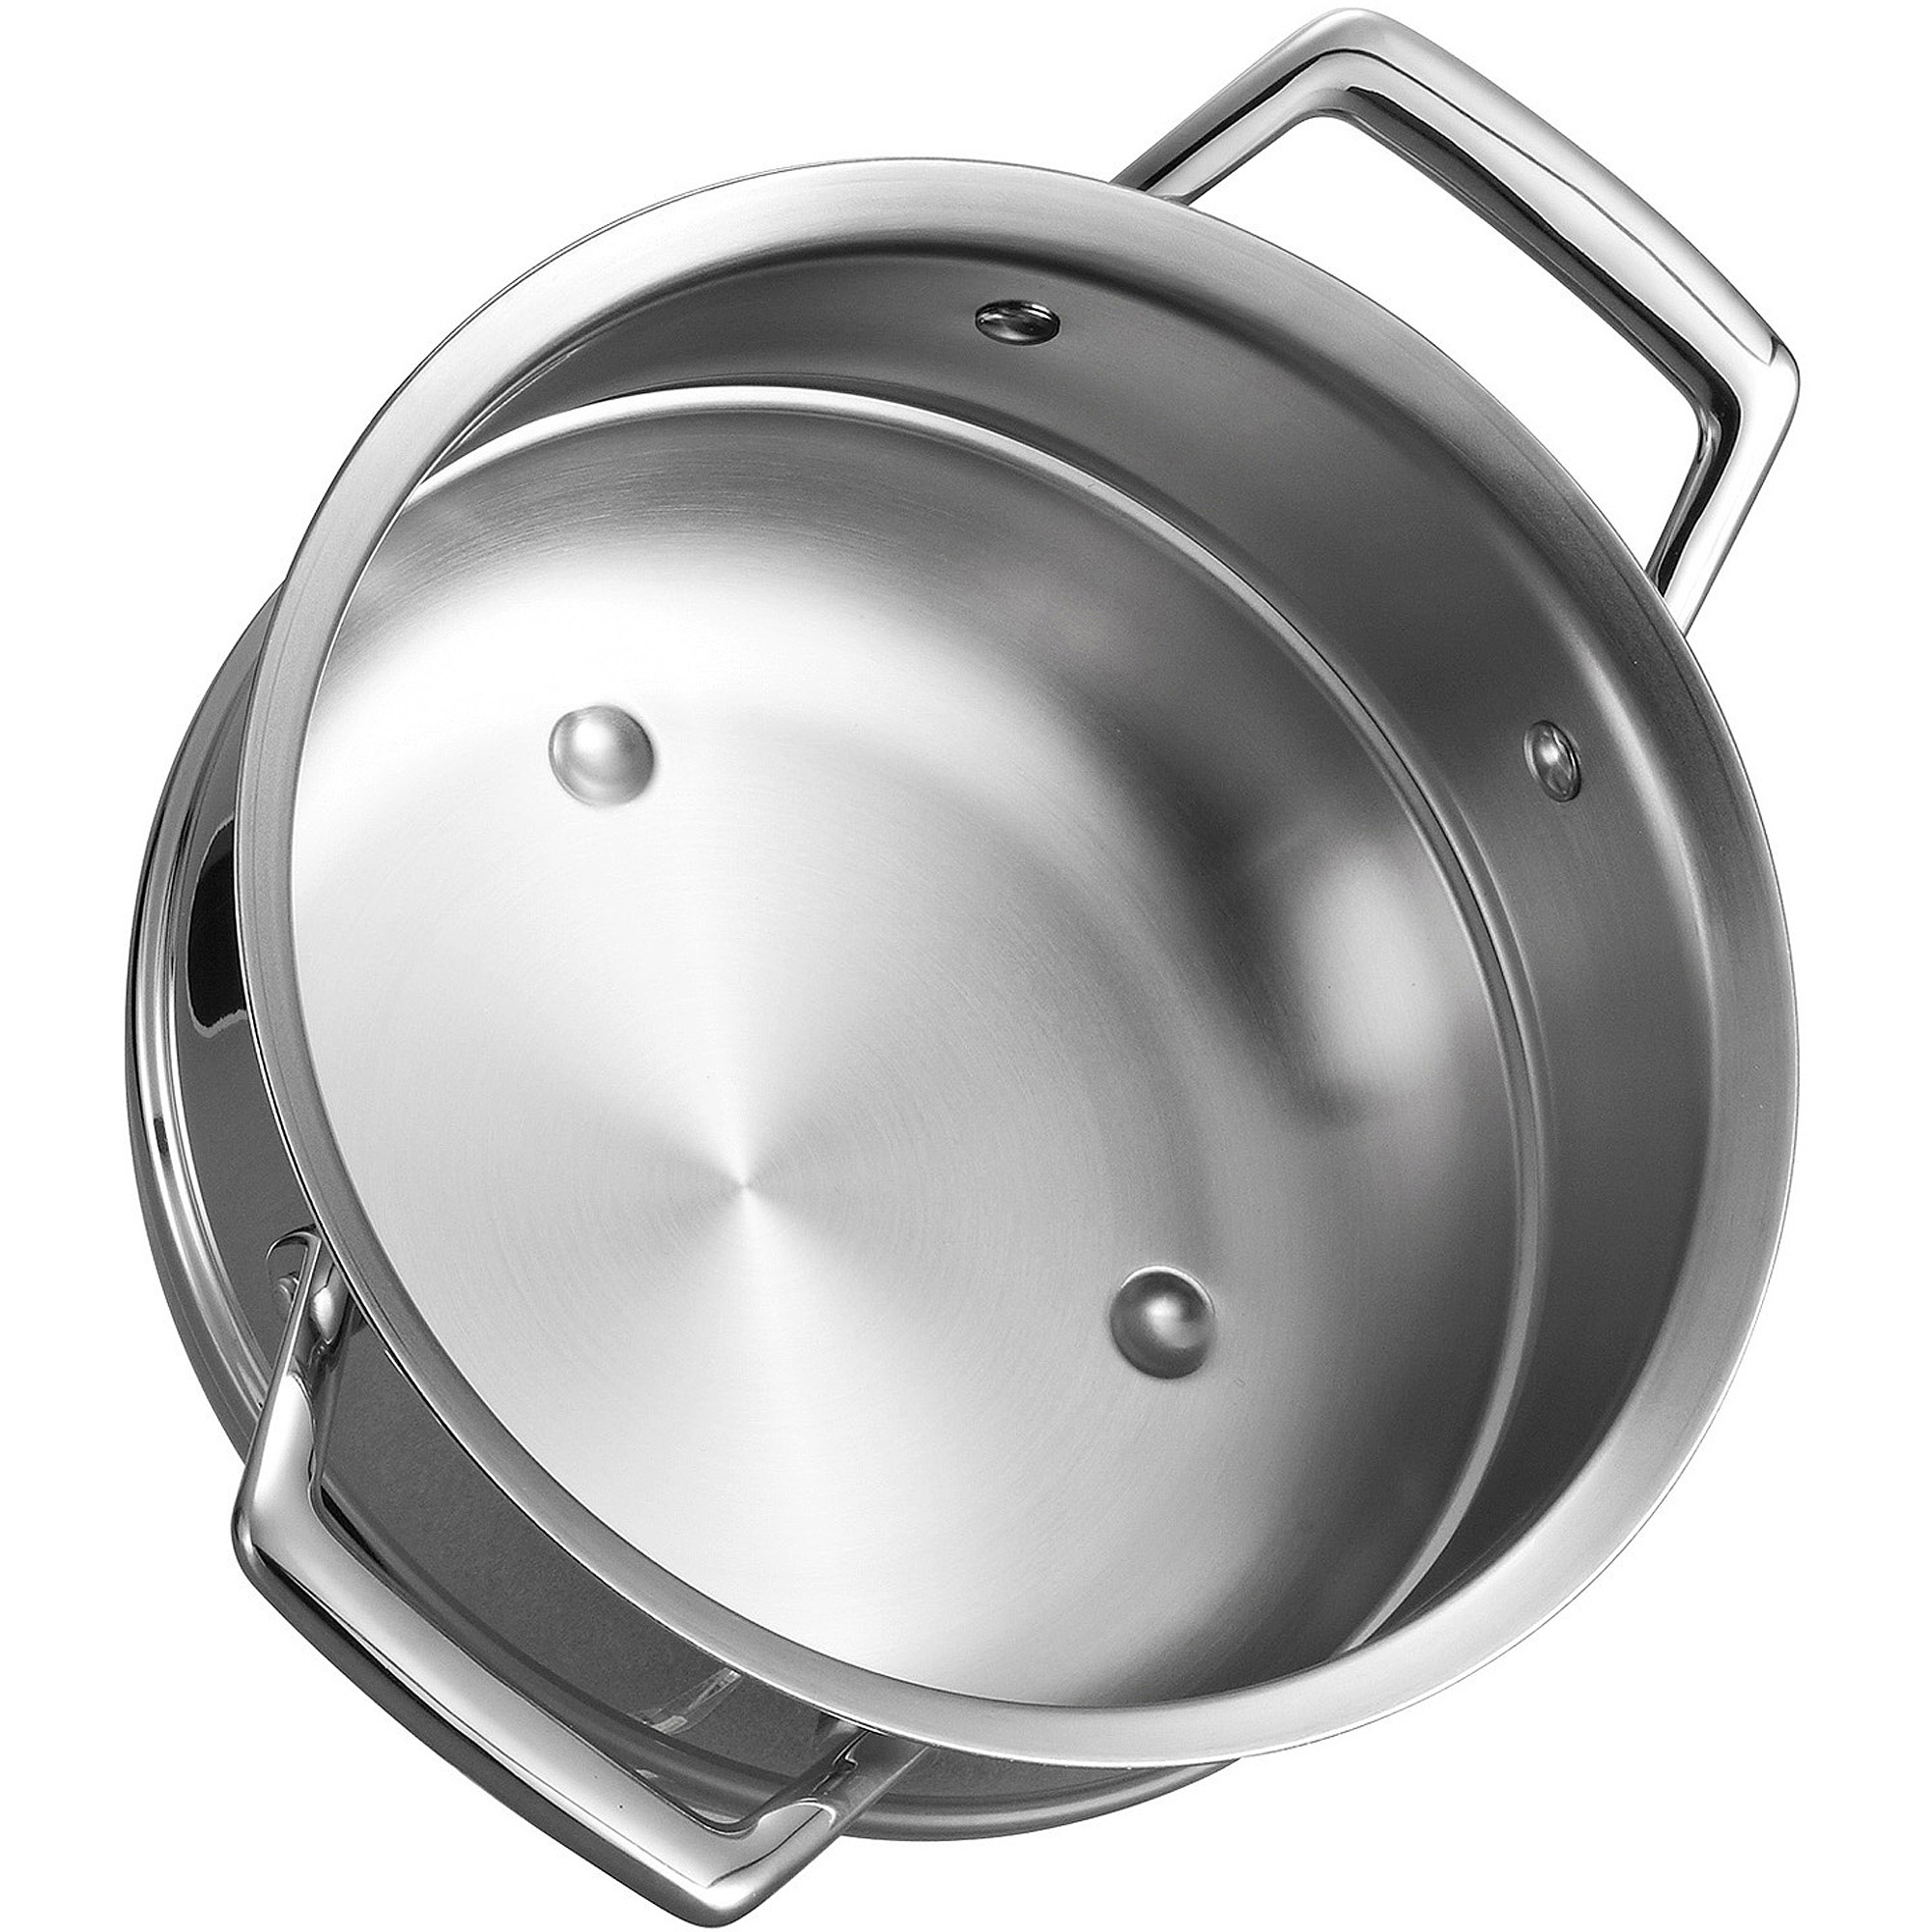 Tramontina Gourmet Prima Double-Boiler Insert (Fits 3 qt and 4 qt Sauce Pans)